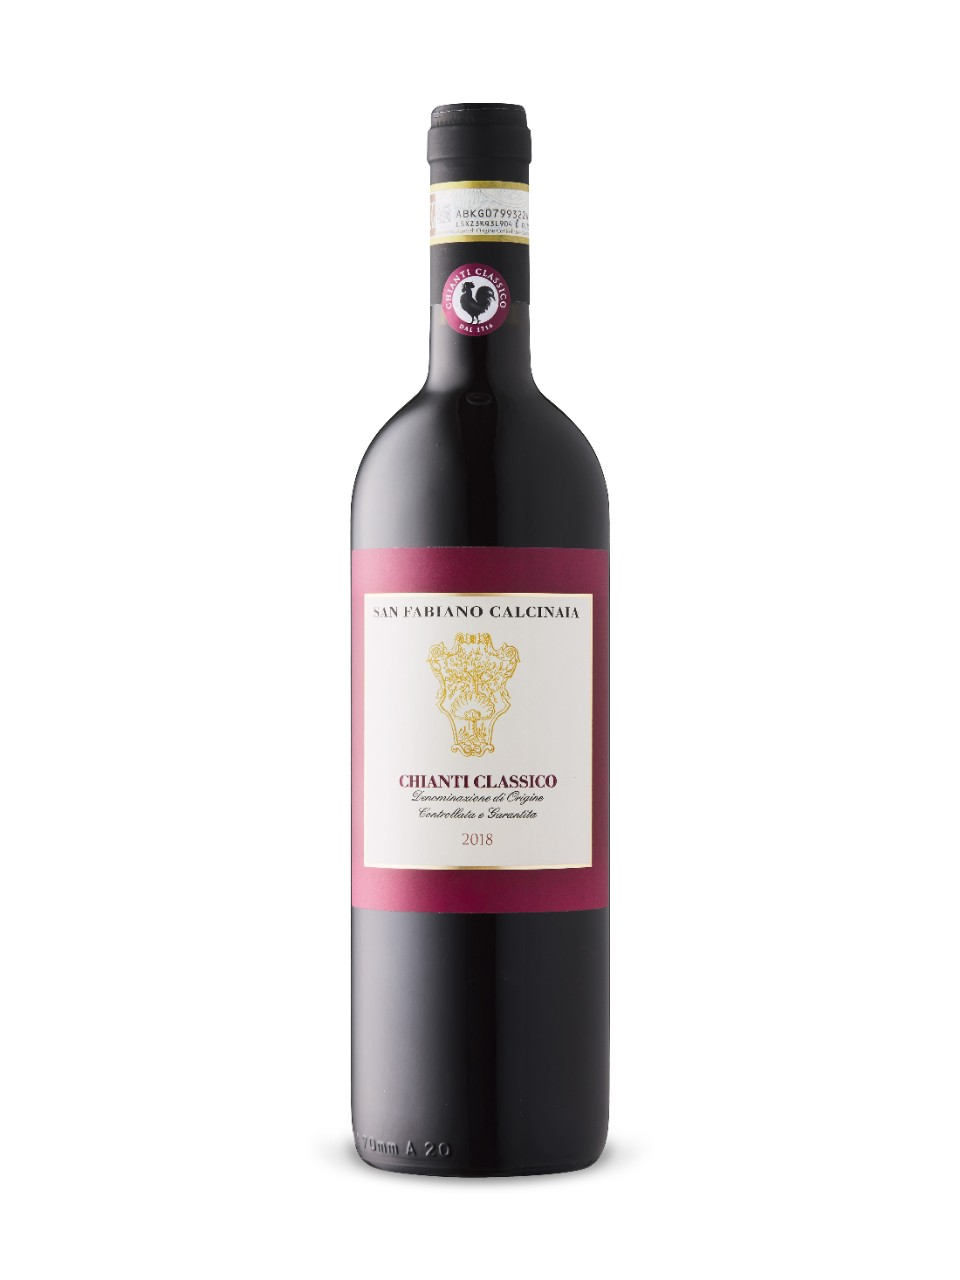 Image for San Fabiano Calcinaia Chianti Classico 2016 from LCBO